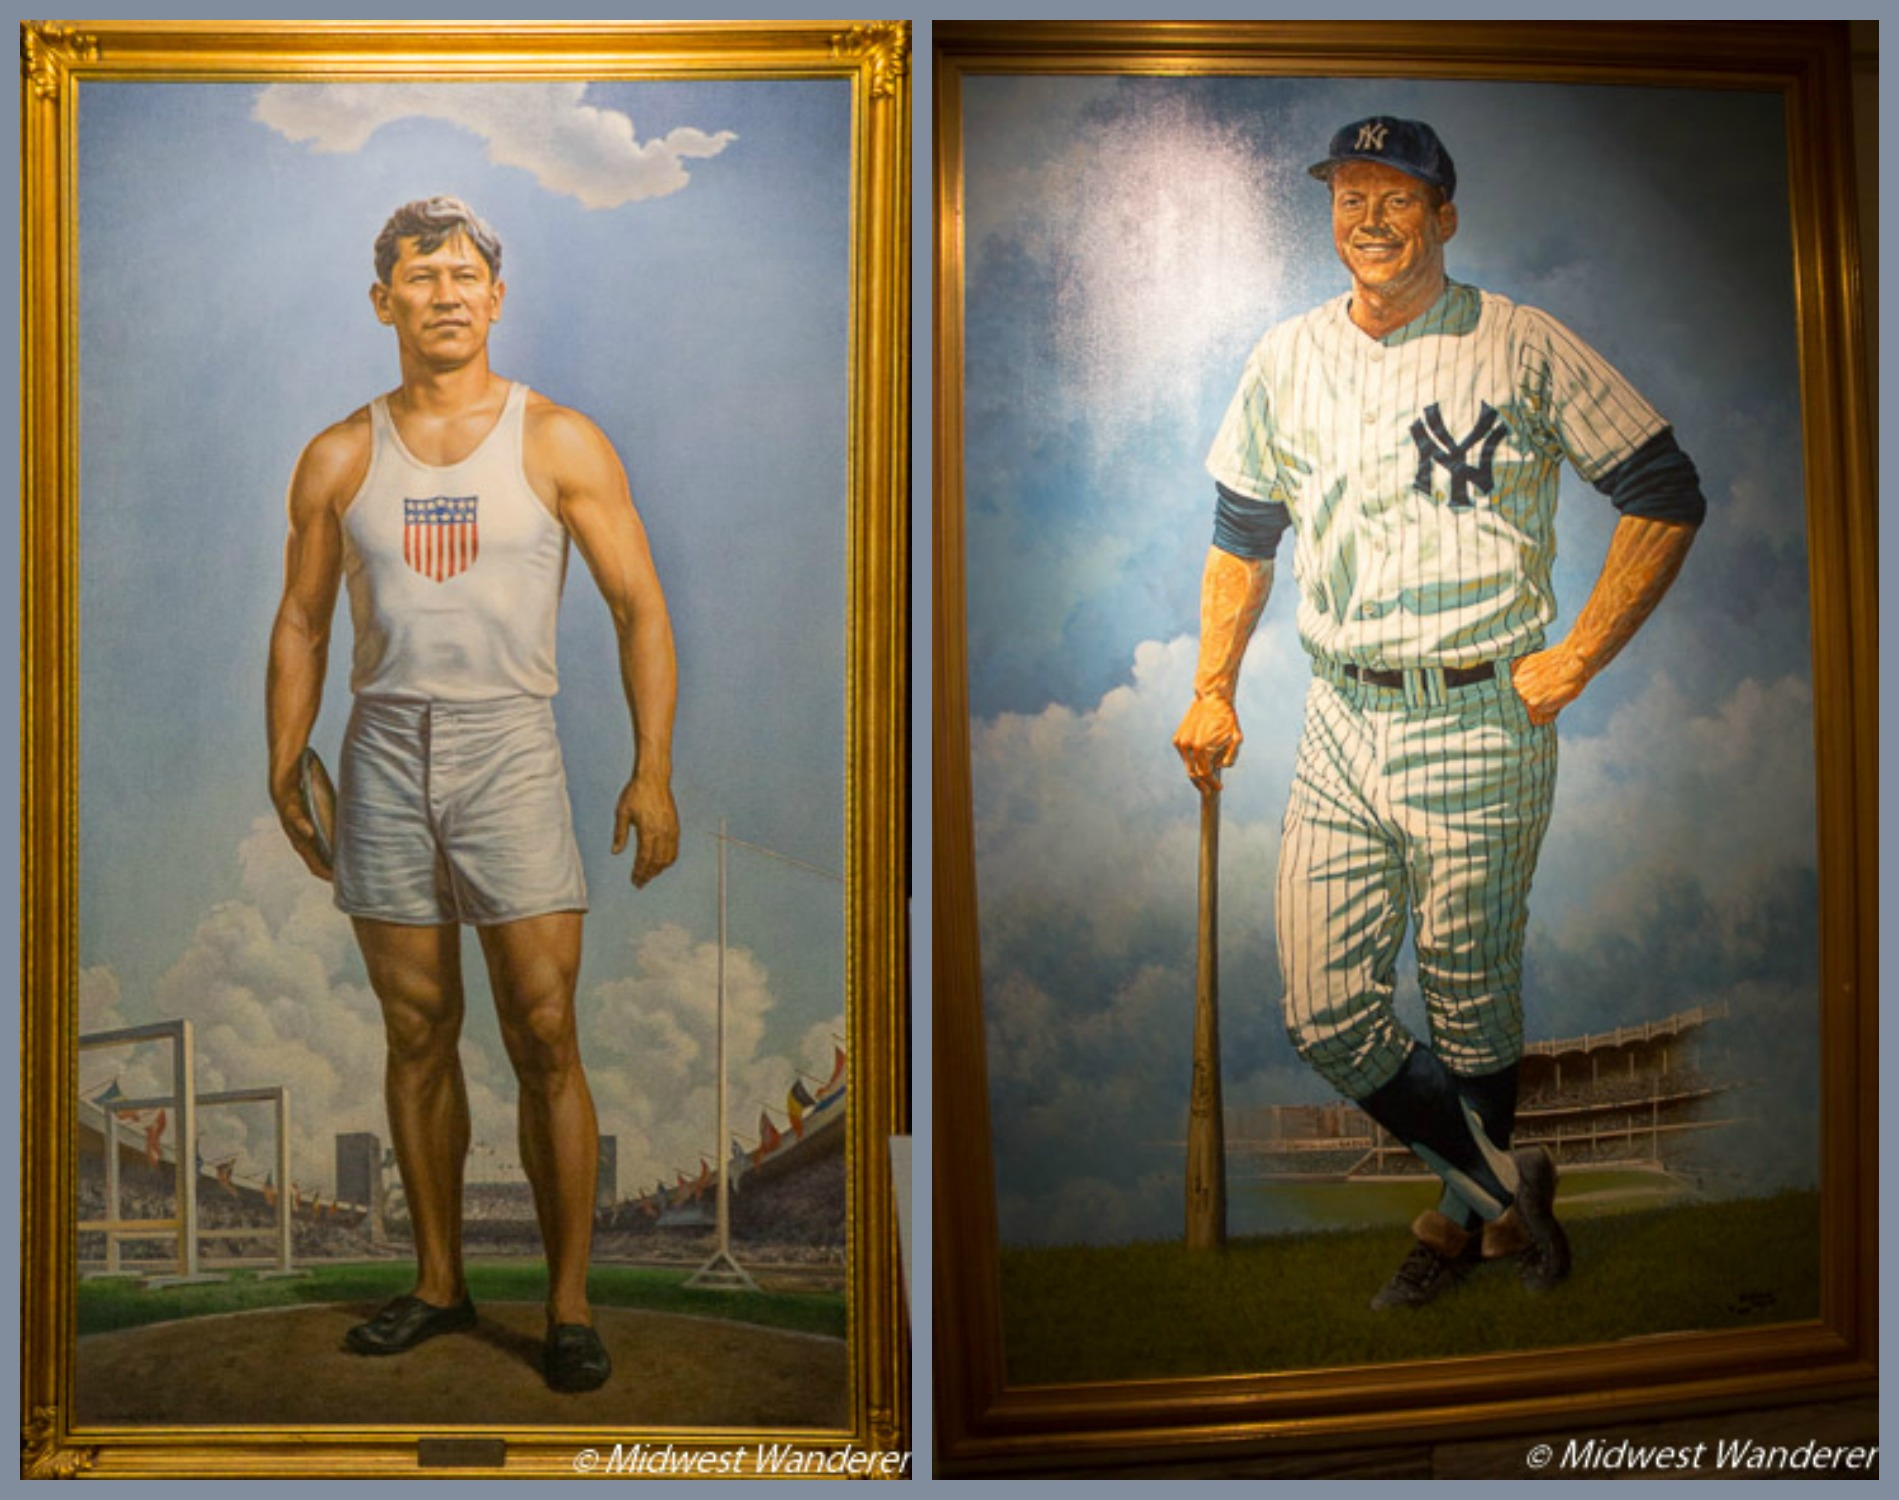 Jim Thorpe and Mickey Mantle